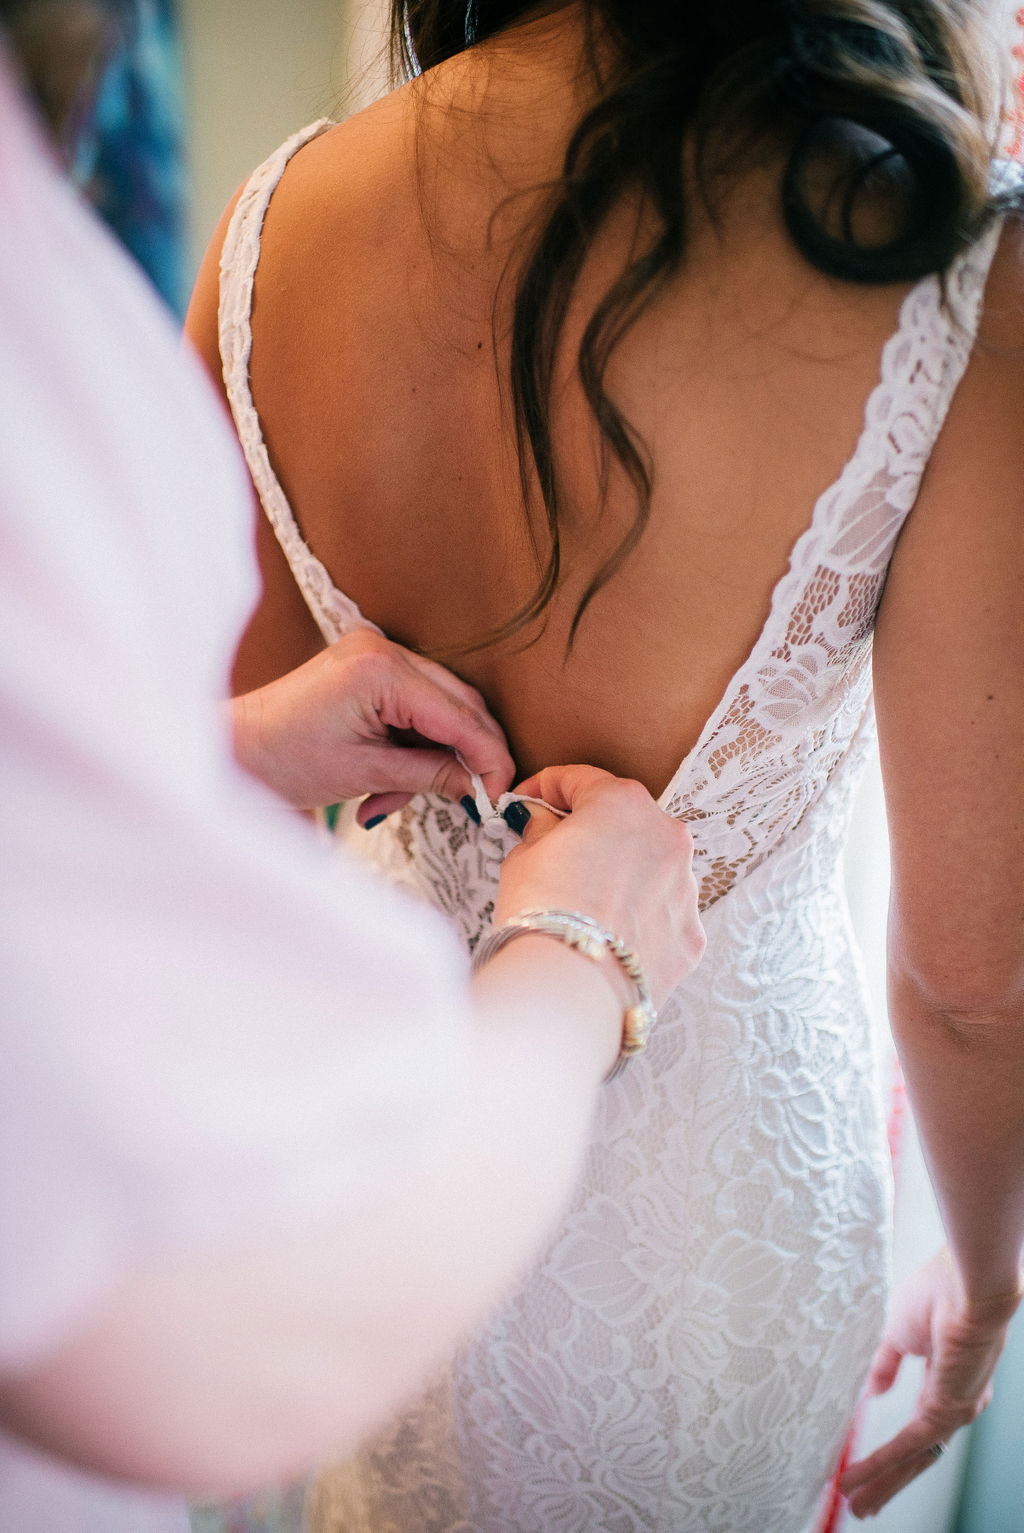 Lace wedding dress details for Intimate Nashville wedding